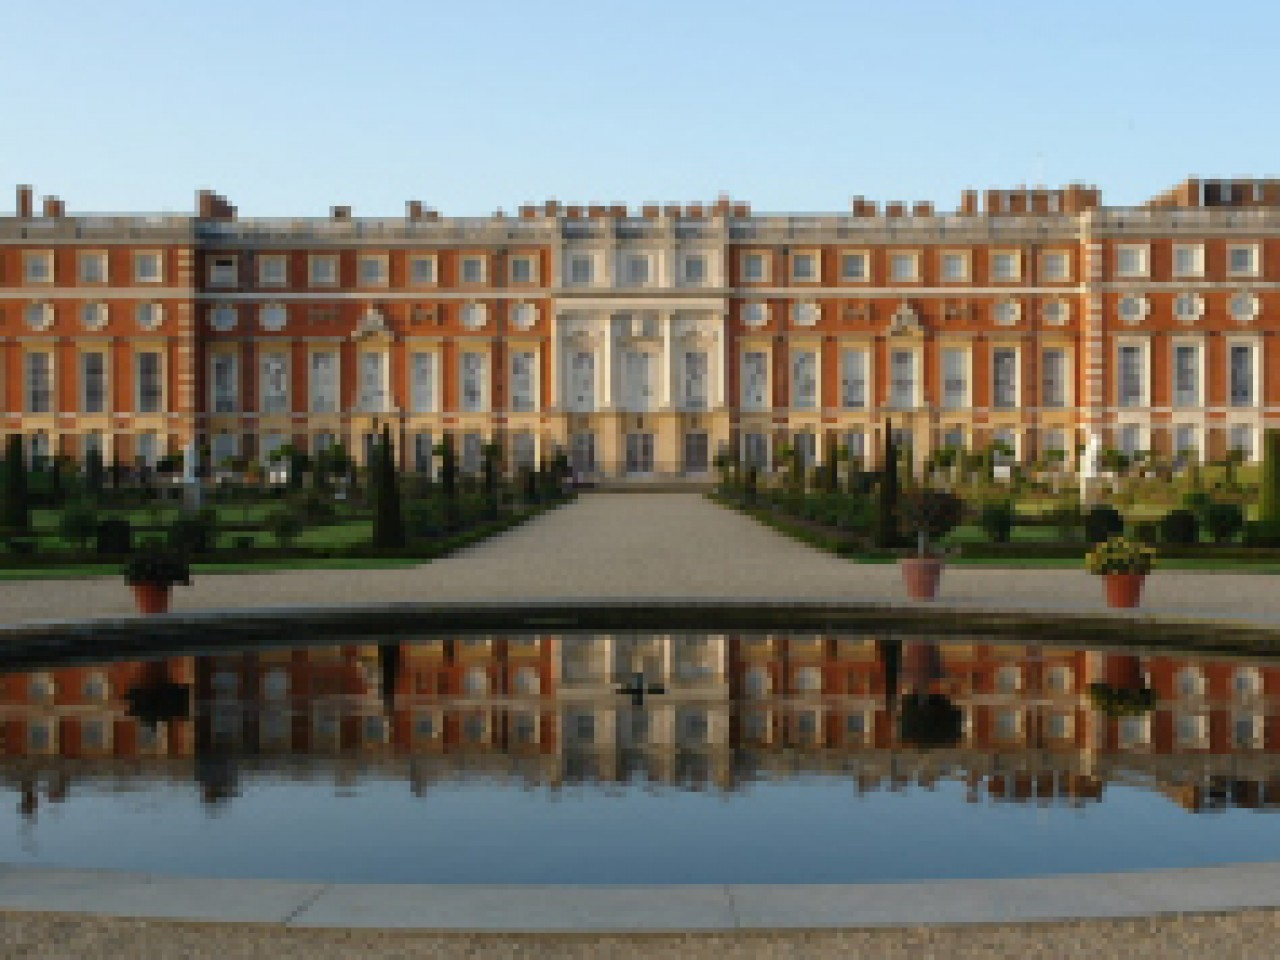 Hampton Court Flower Show Hotel & Ticket packages